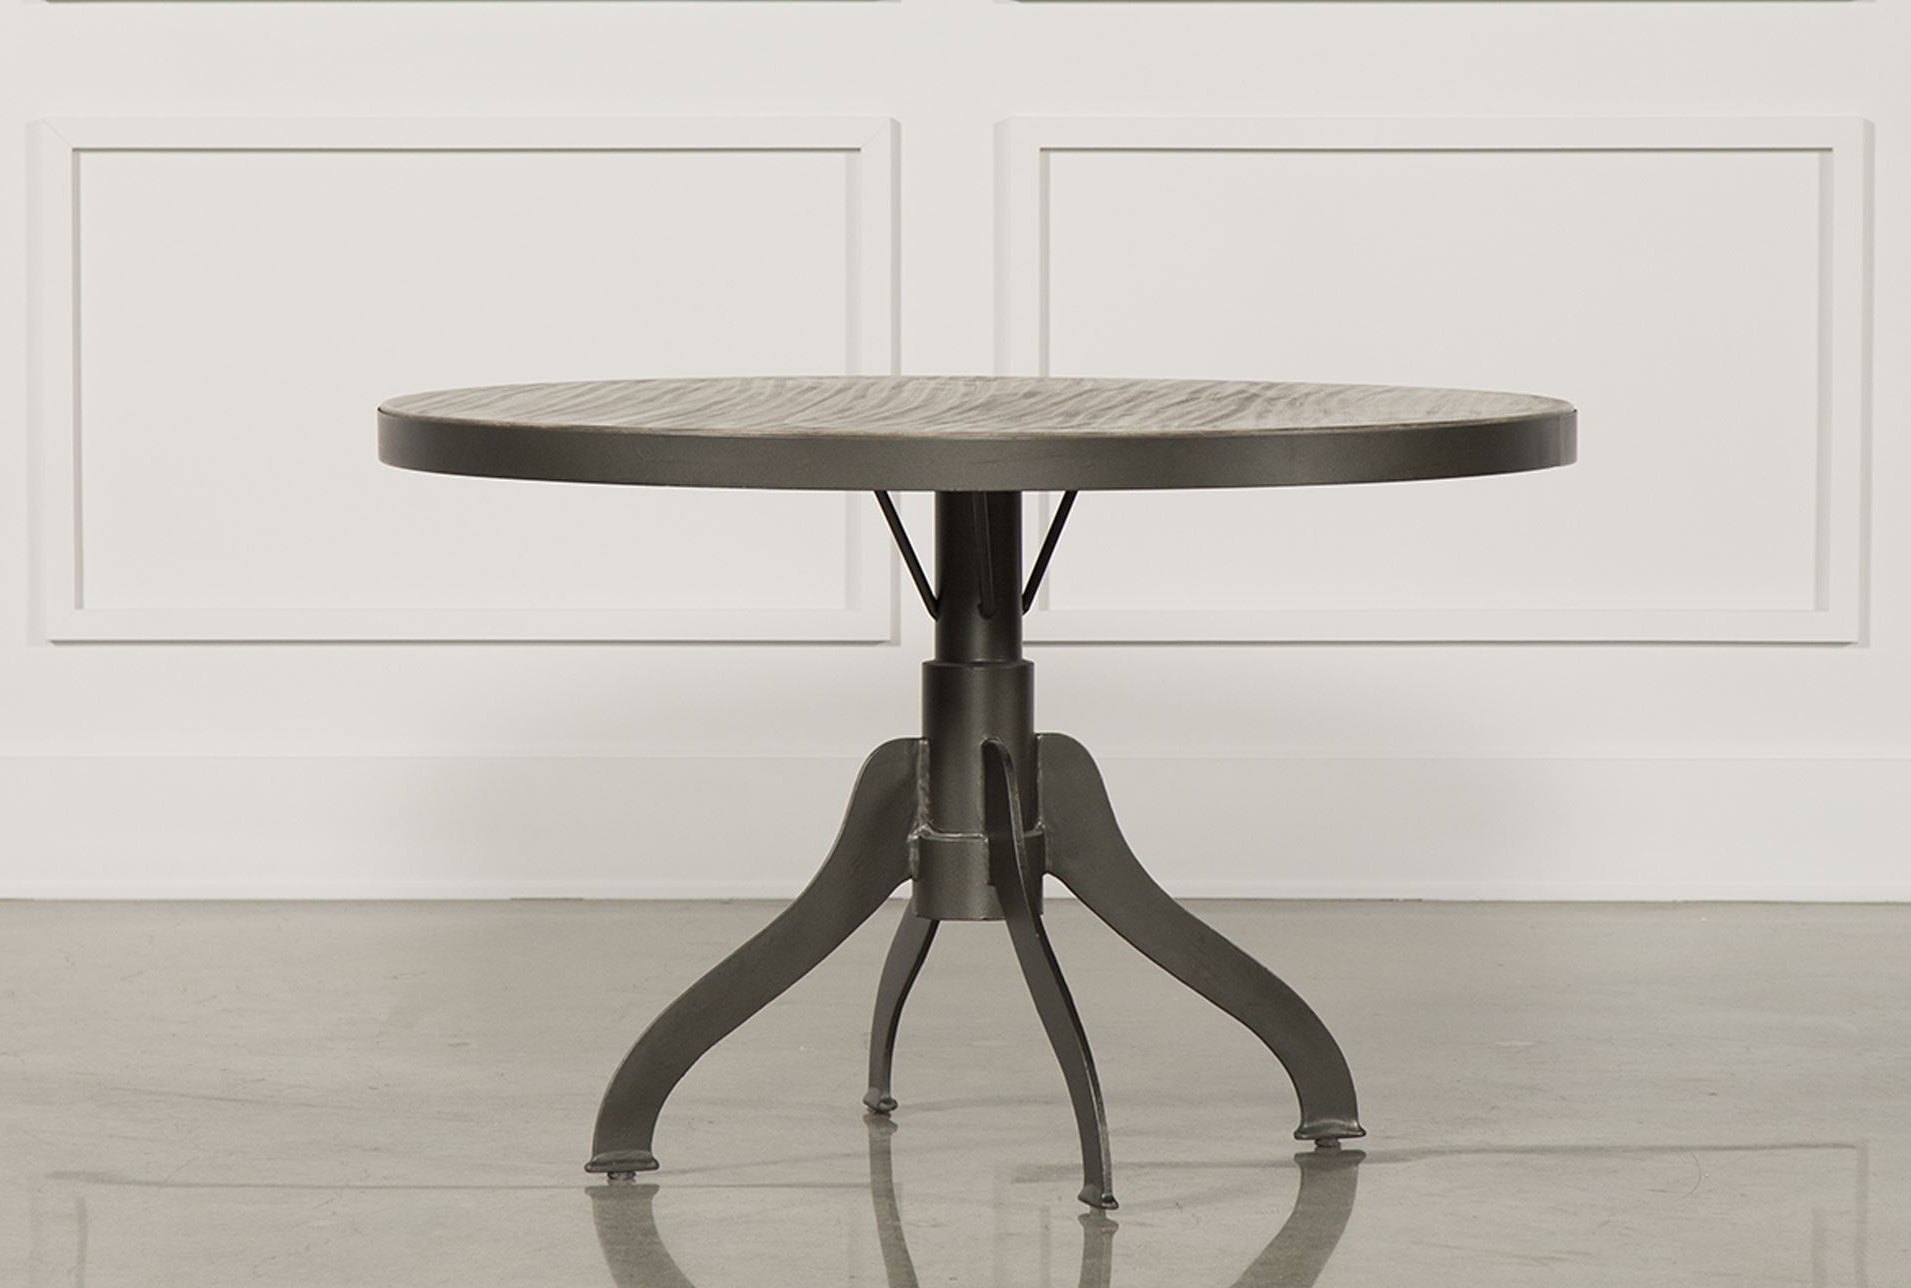 Grady Round Dining Tables In 2017 Table Decor Booster Seat Kid Friendly Round Dining Table On Table (View 9 of 25)